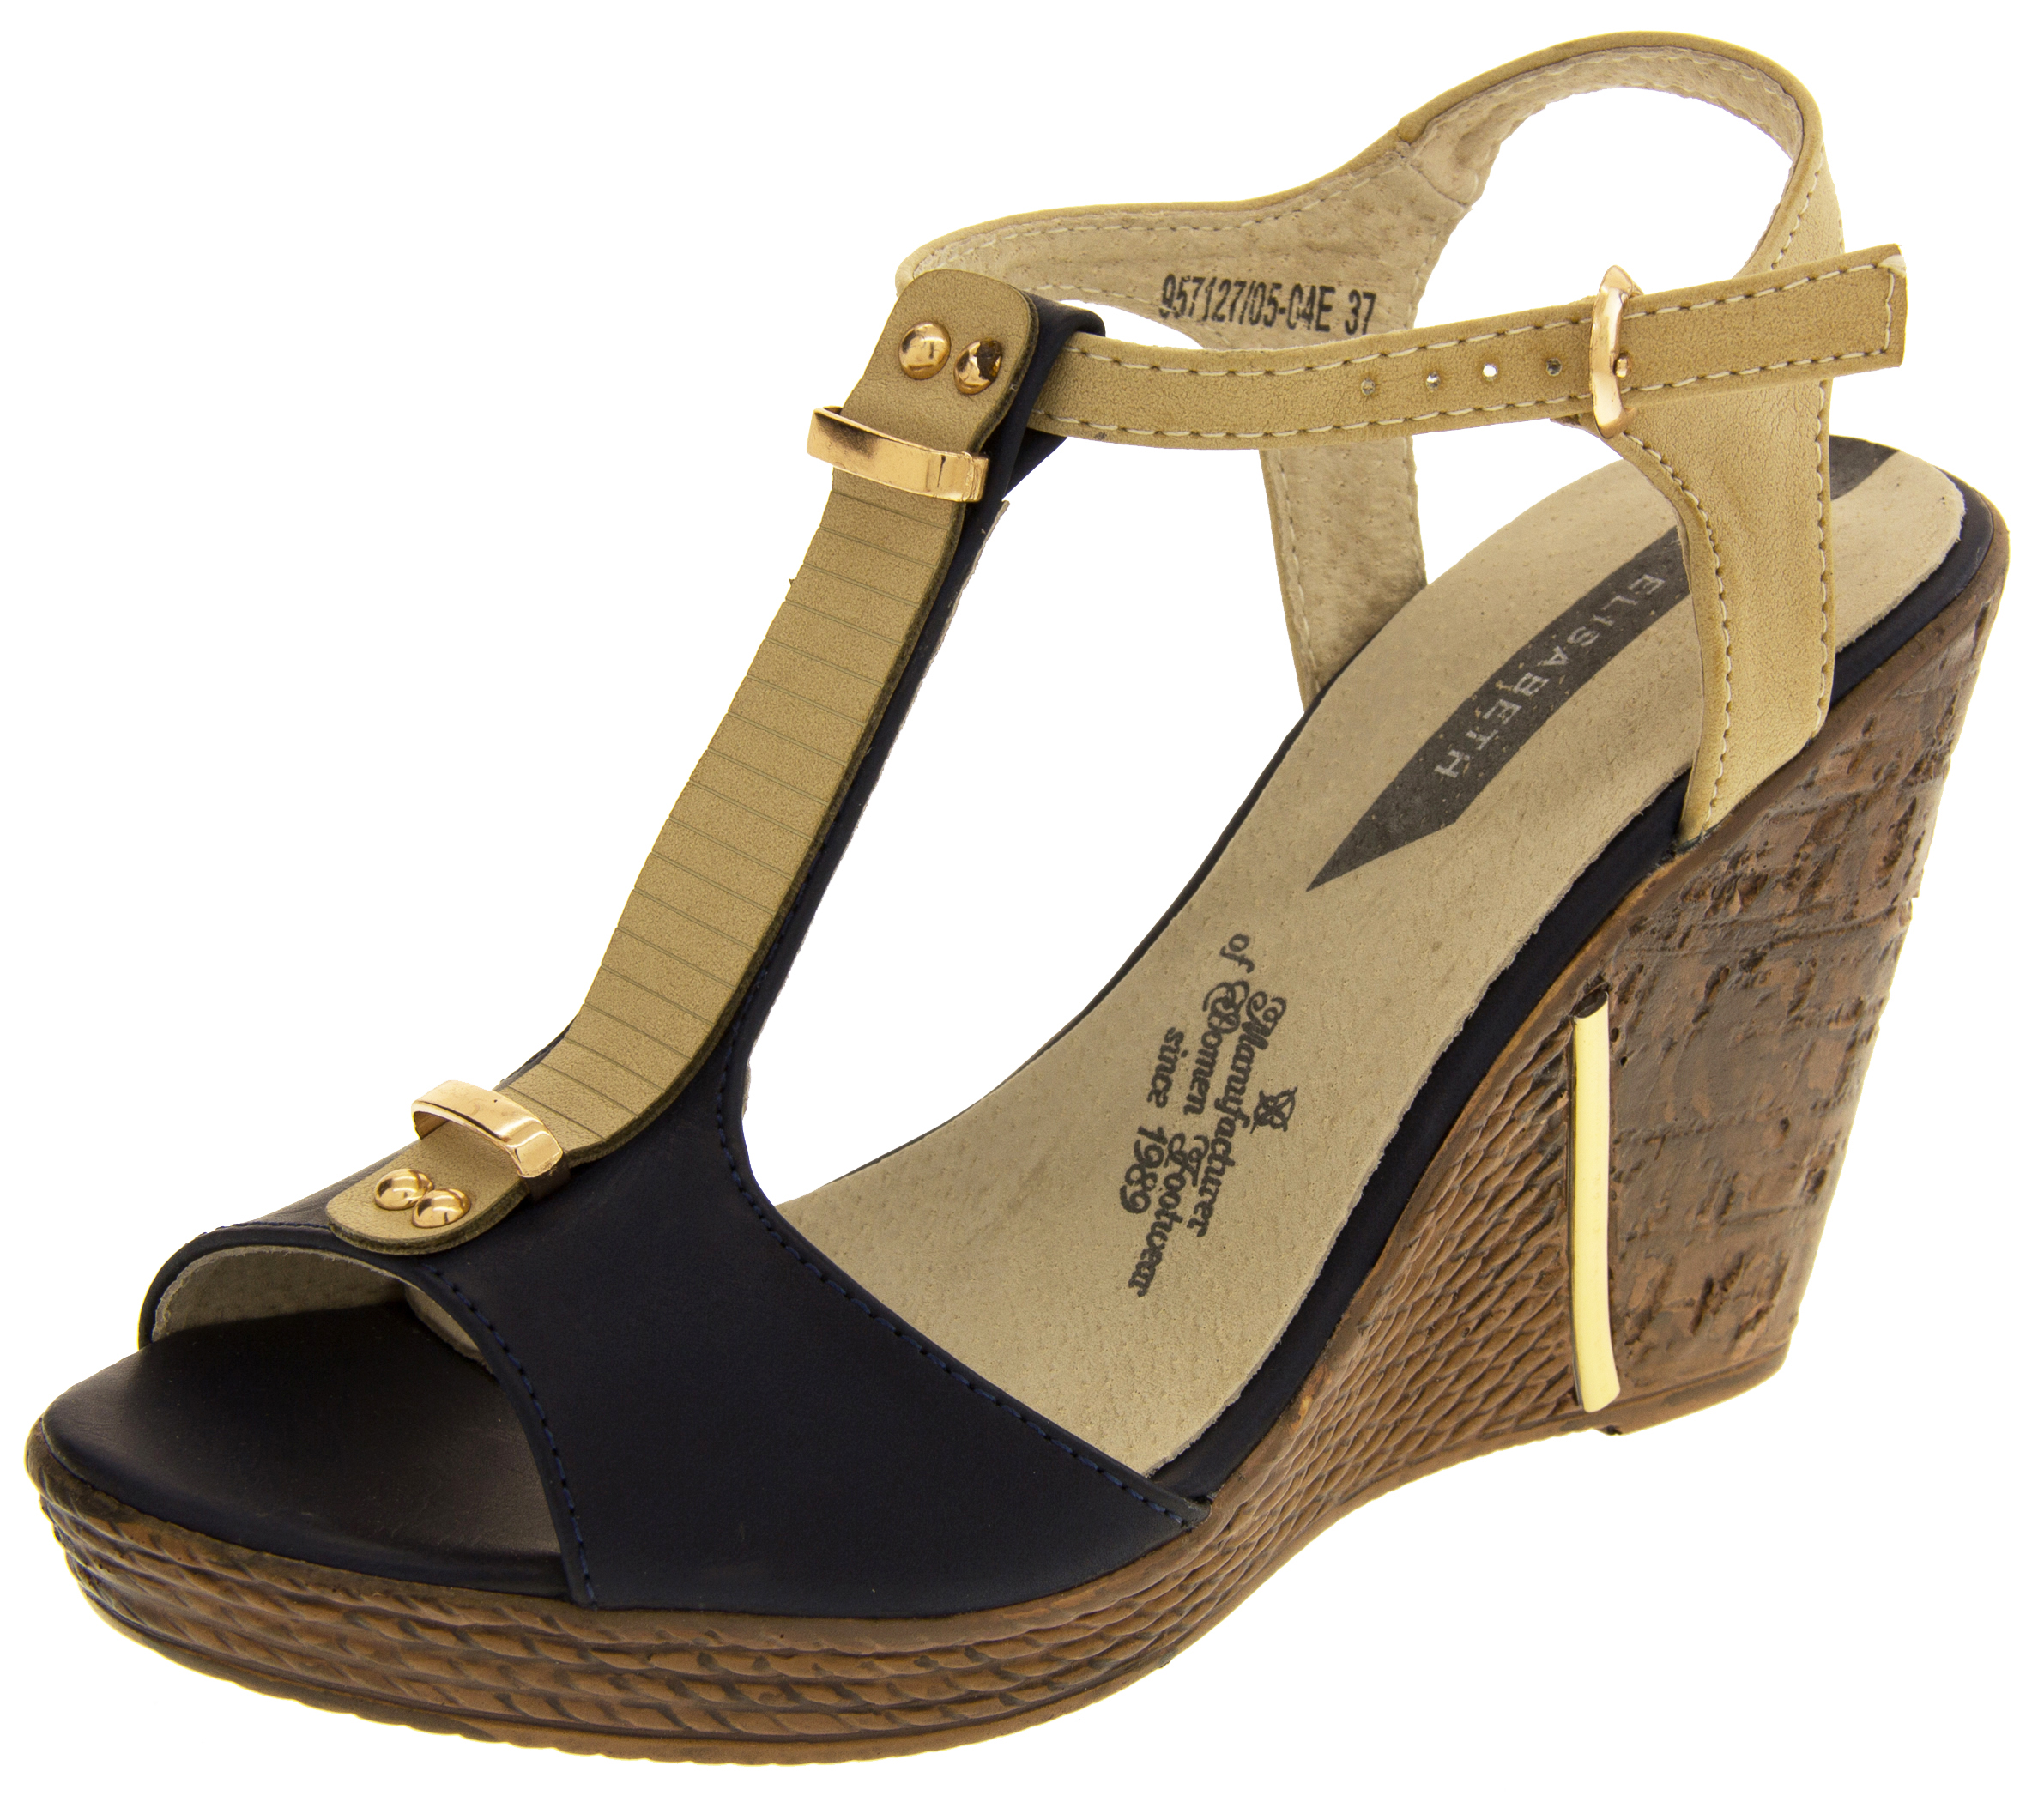 cac13e3712aba8 Sentinel Womens Elisabeth Wedge High Heels Sandals Platform Strappy Shoes  Size 4 6 7 8